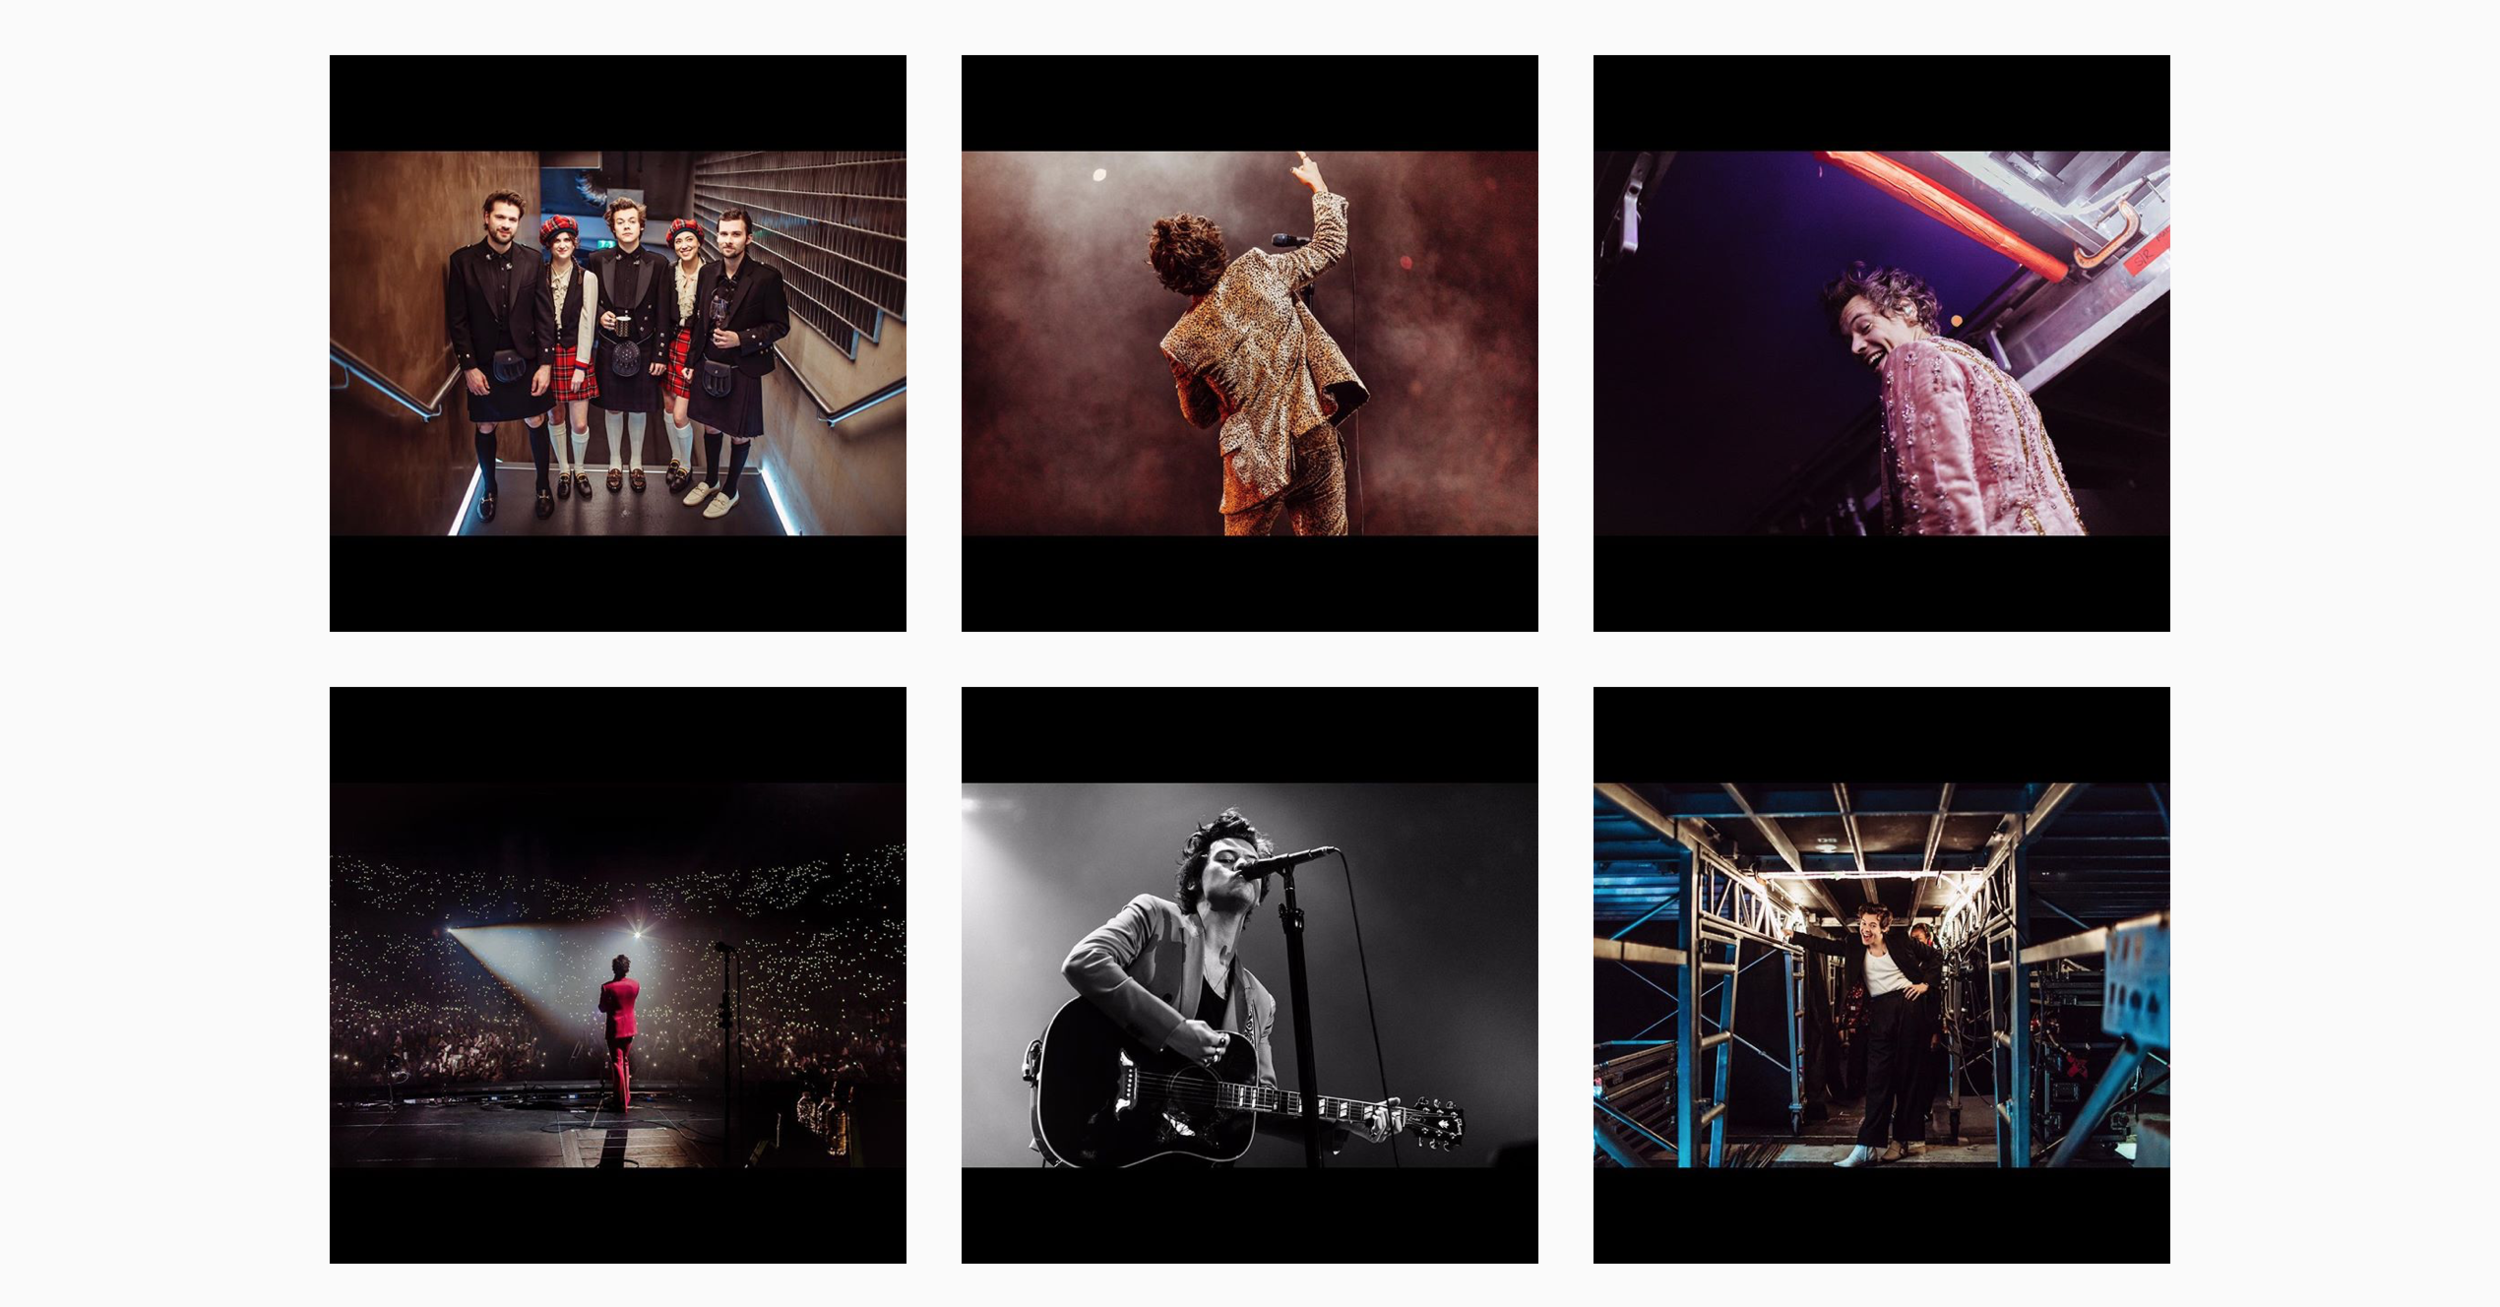 tbh, if you didn't see this coming,  well then, idk. but this post would be incomplete without mentioning my guy. major props to another one of my favorite photographers, queen  Hélène pambrun for capturing harry's tour so impeccably. every single photo from this tour is filled with so much emotion, my heart quite literally jumps seeing such beautiful artistry featuring such a beautiful king. harry is currently on hiatus (ha) but I know that there will be a continuation of quality content coming in soon. i'm ever so grateful for his  goodbye post , though. kissy.